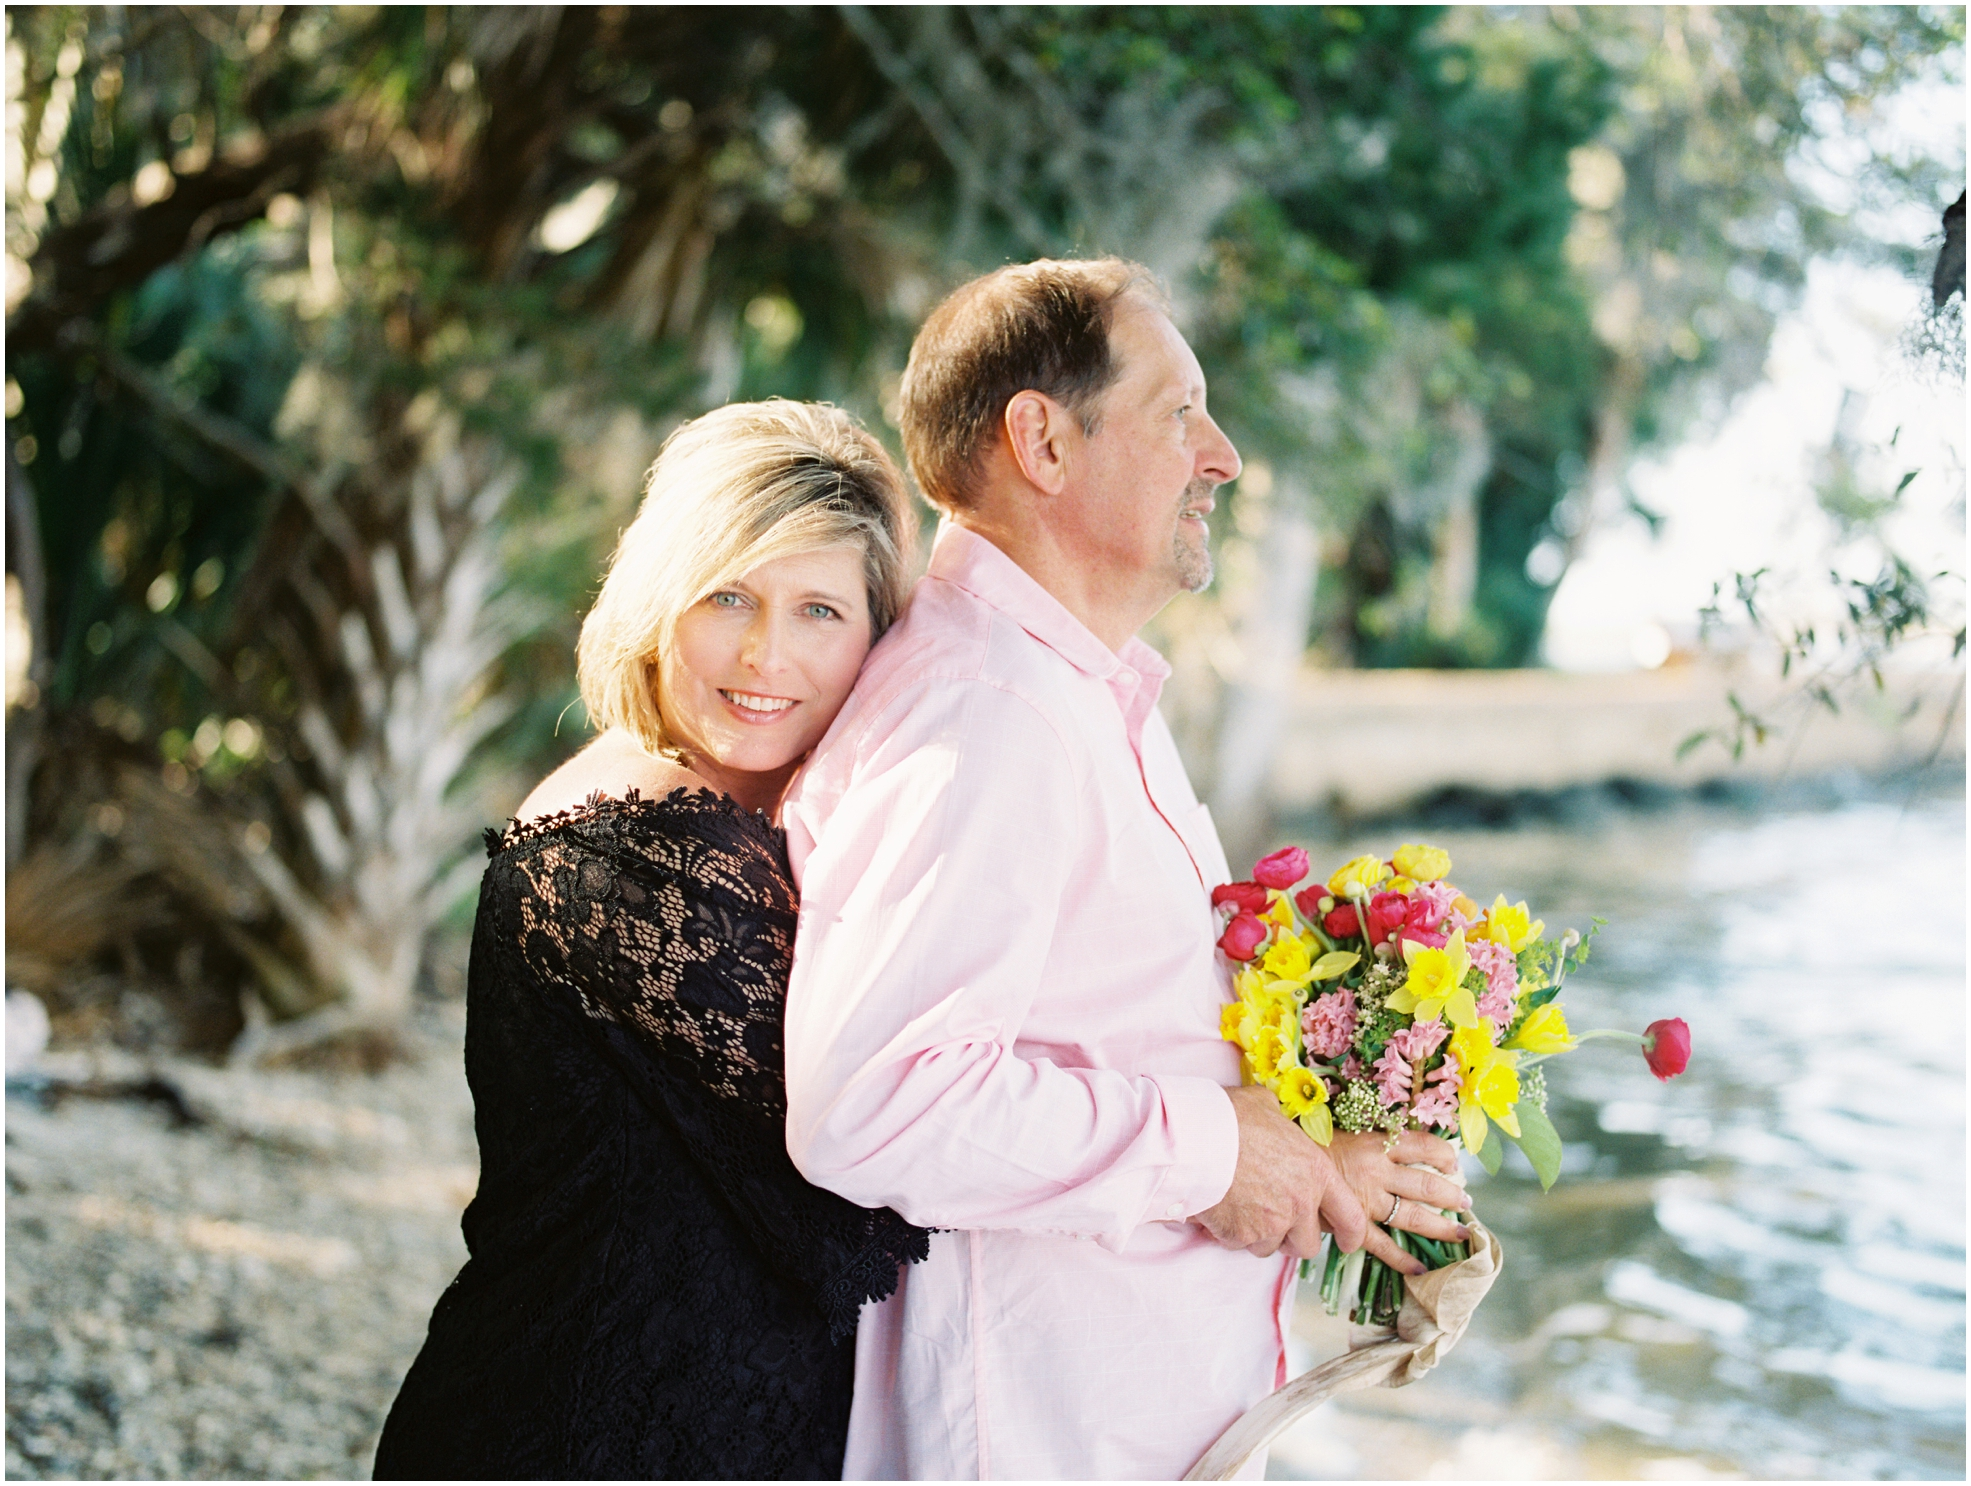 Lisa Silva Photography- Jacksonville, St. Augustine, Amelia Island, Ponte Vedra Beach, North East Florida Fine Art Film Photographer- Anniversary Session at Washington Oaks in Palm Coast, Florida_0055.jpg